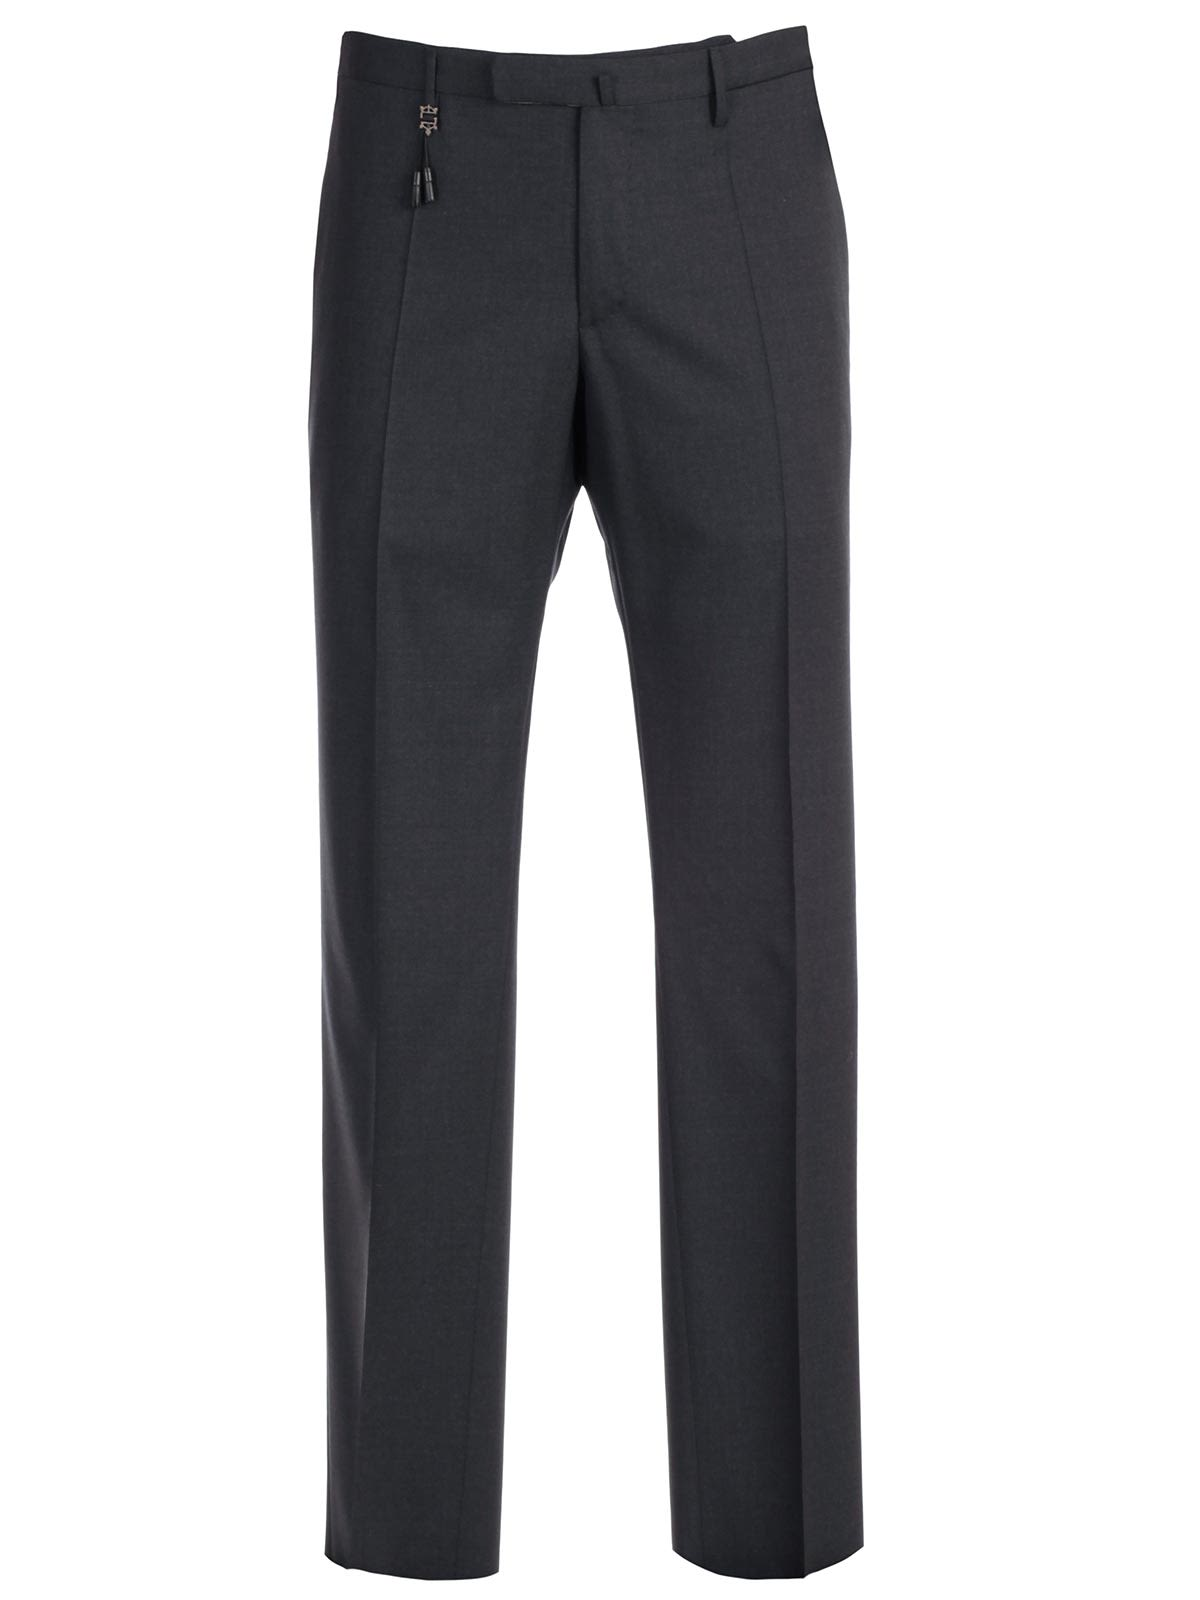 Incotex Fringed Detail Trousers